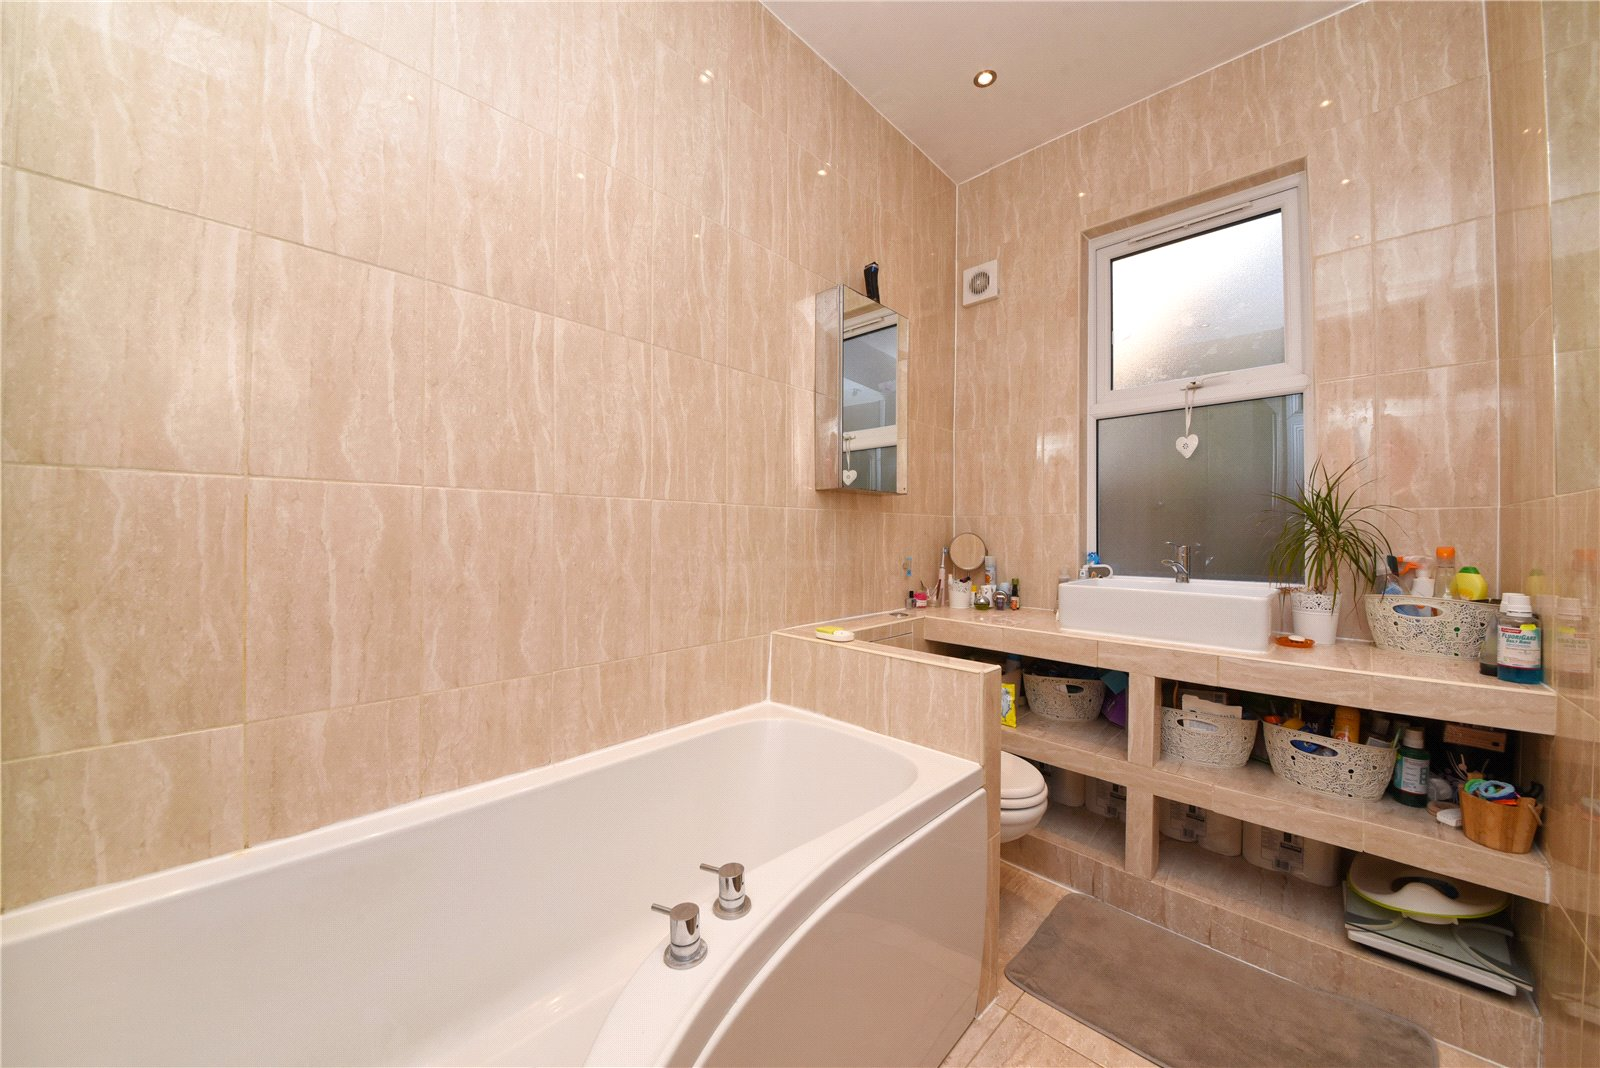 2 bed apartment for sale in East Finchley, N2 0SX  - Property Image 9